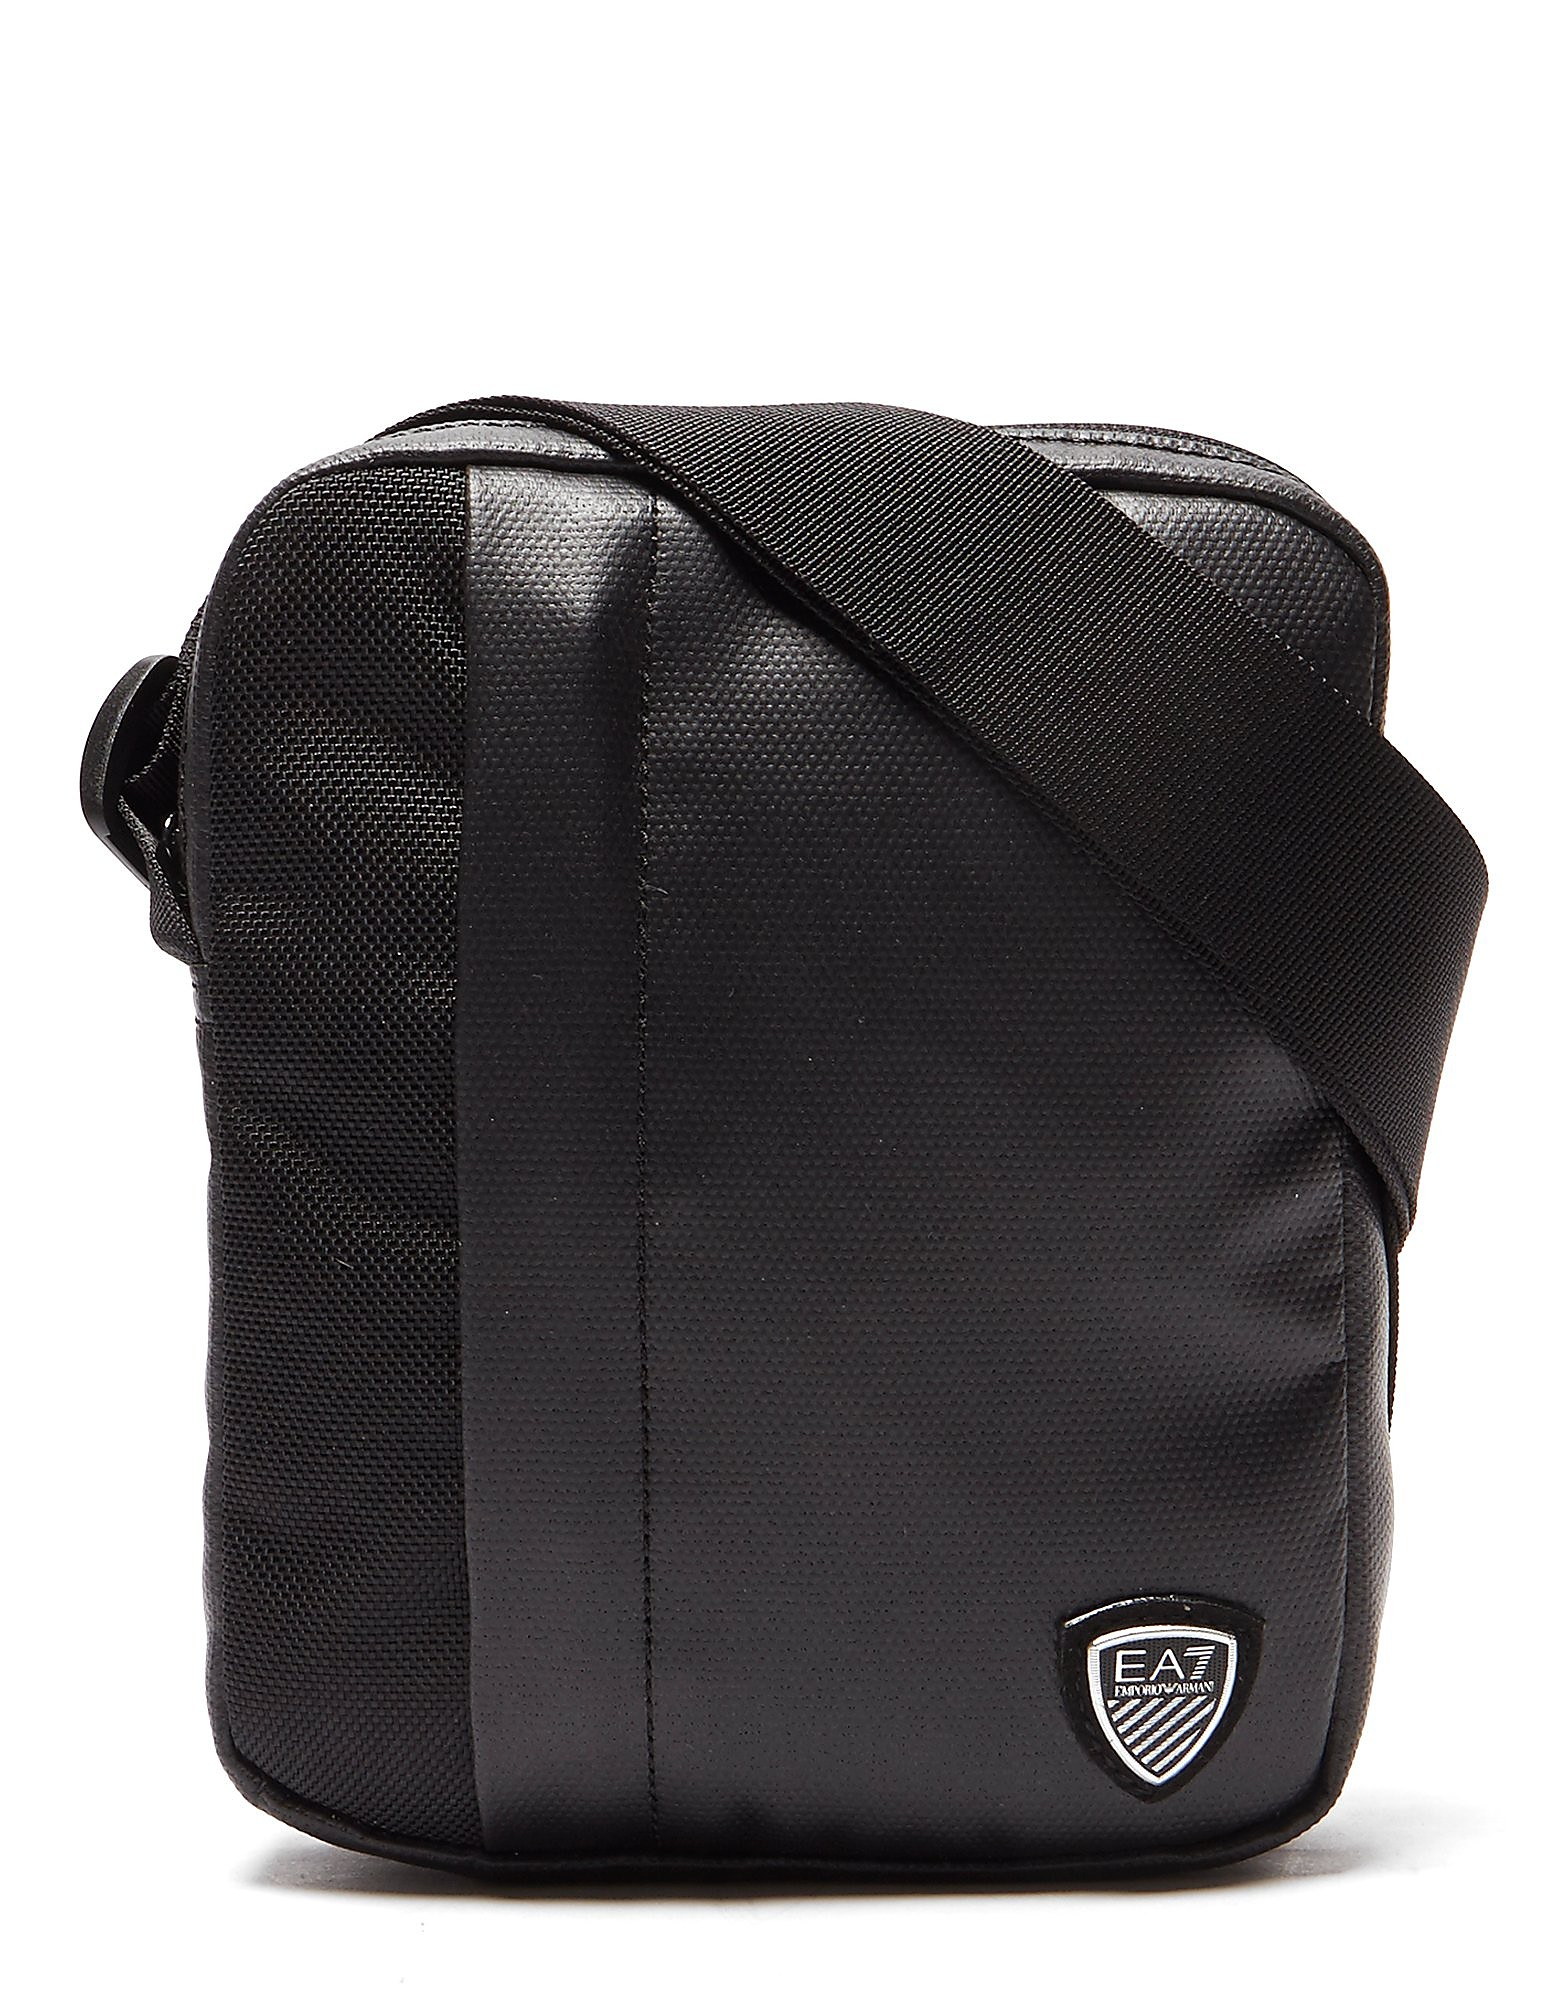 Emporio Armani EA7 Train Soccer Bag